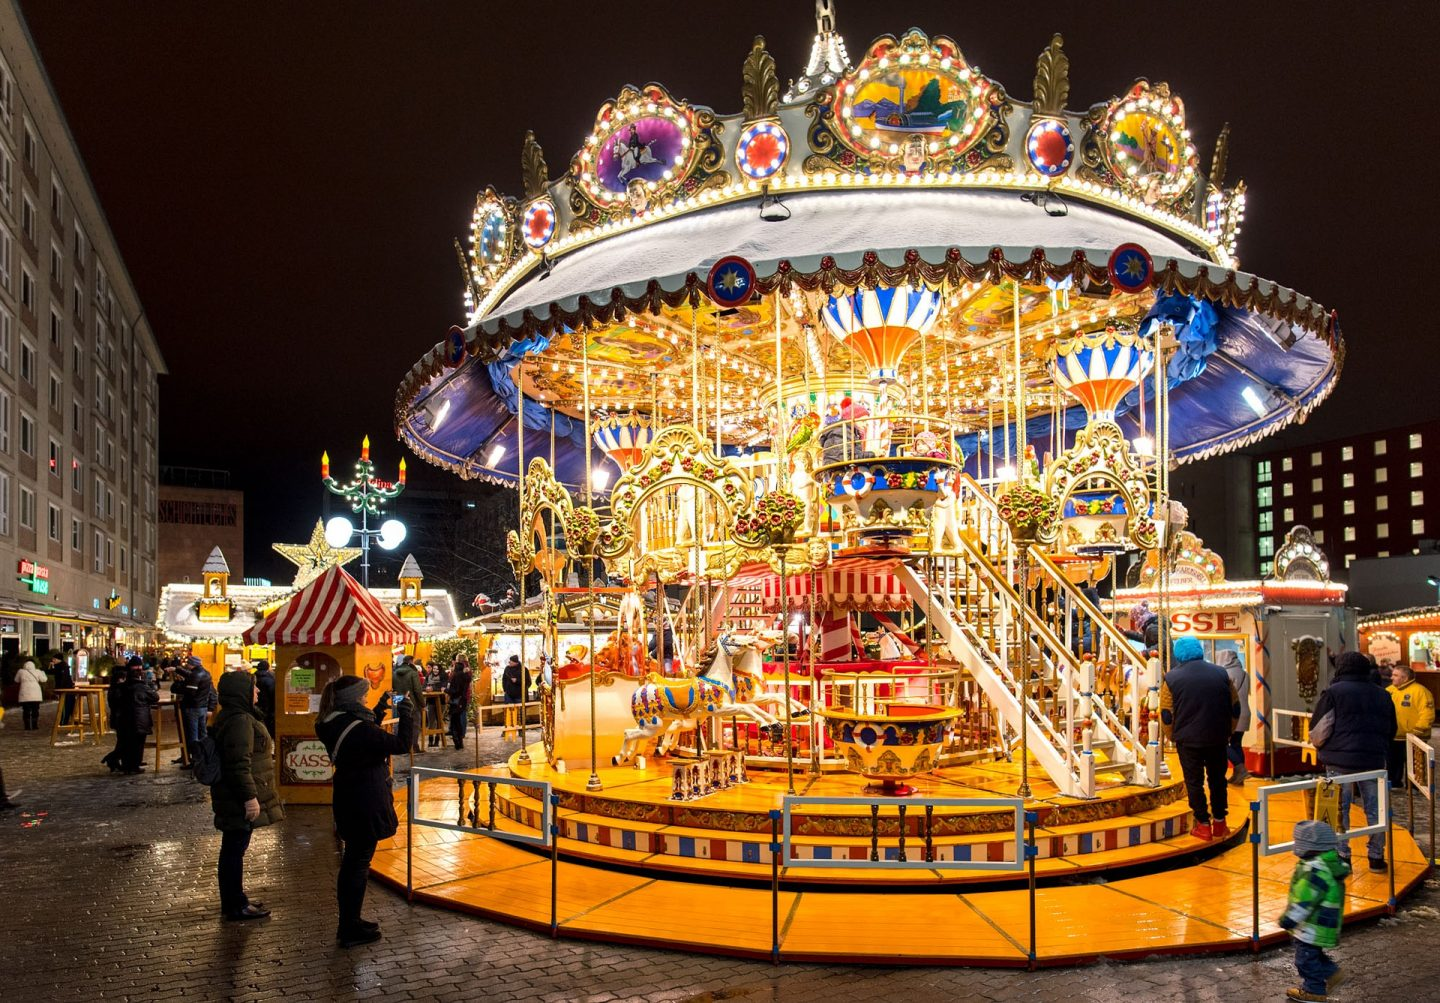 Carousel at European Christmas Market